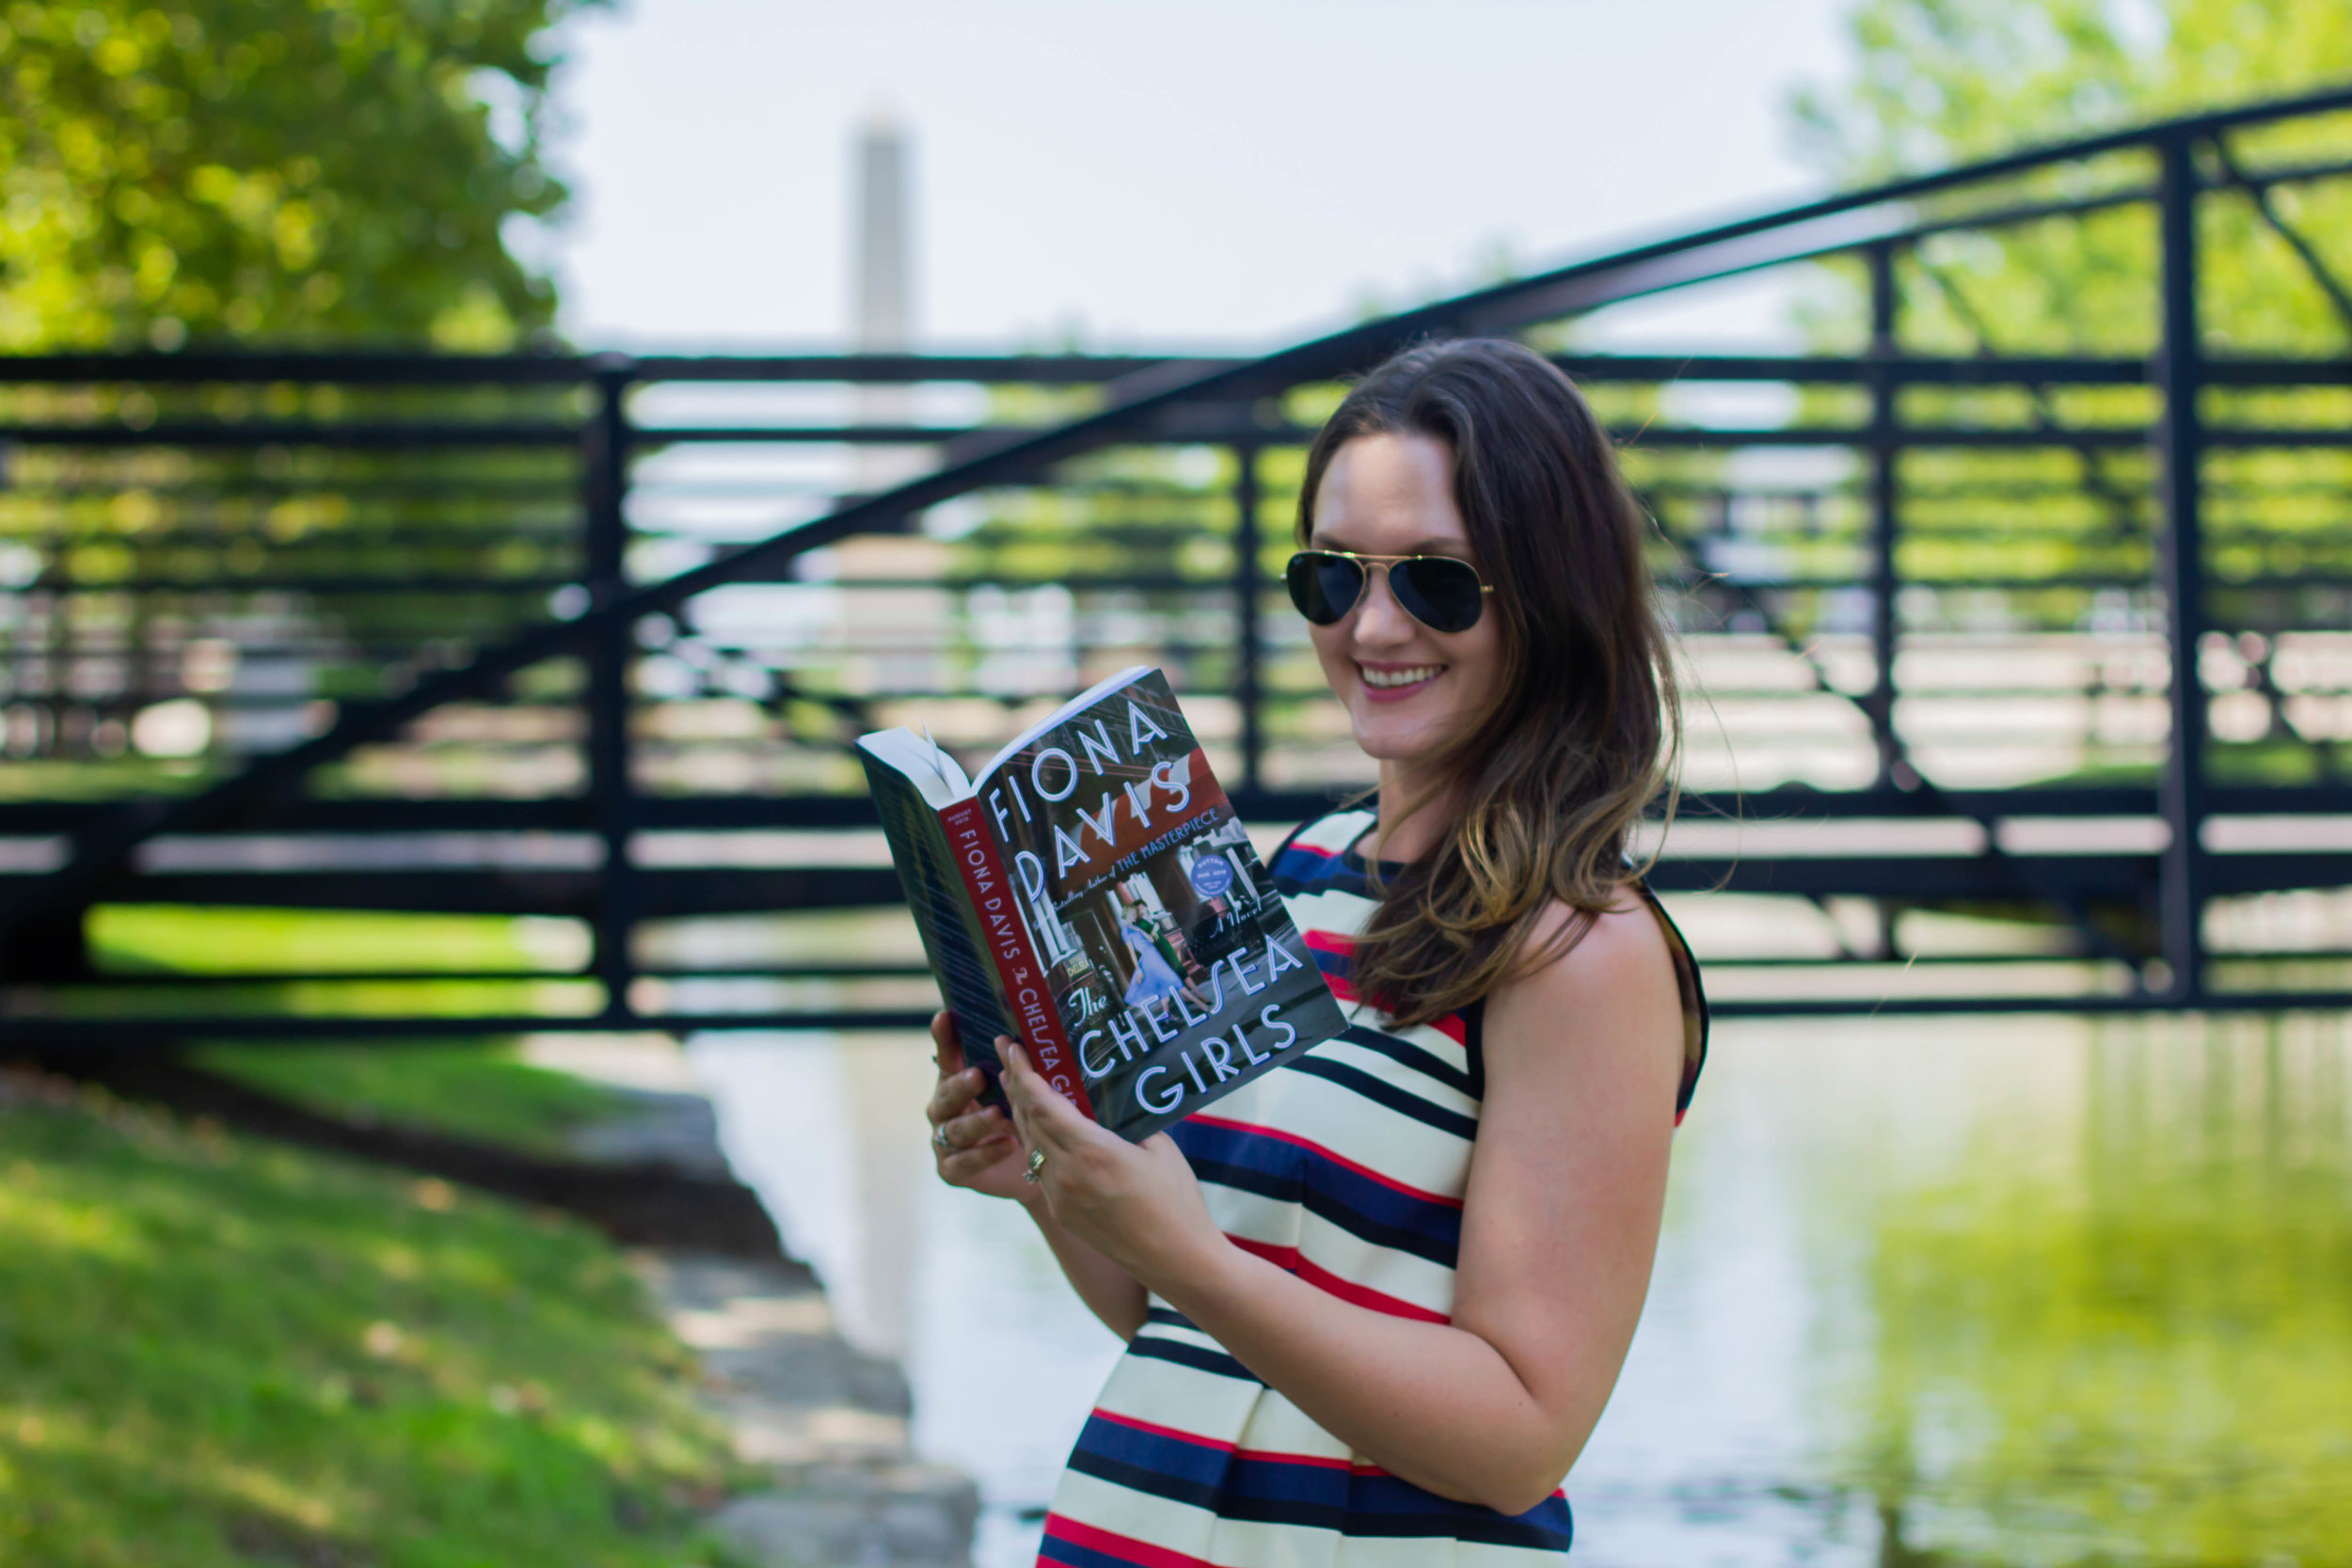 Reading The Chelsea Girls by Fiona Davis in New Town at St. Charles, MO